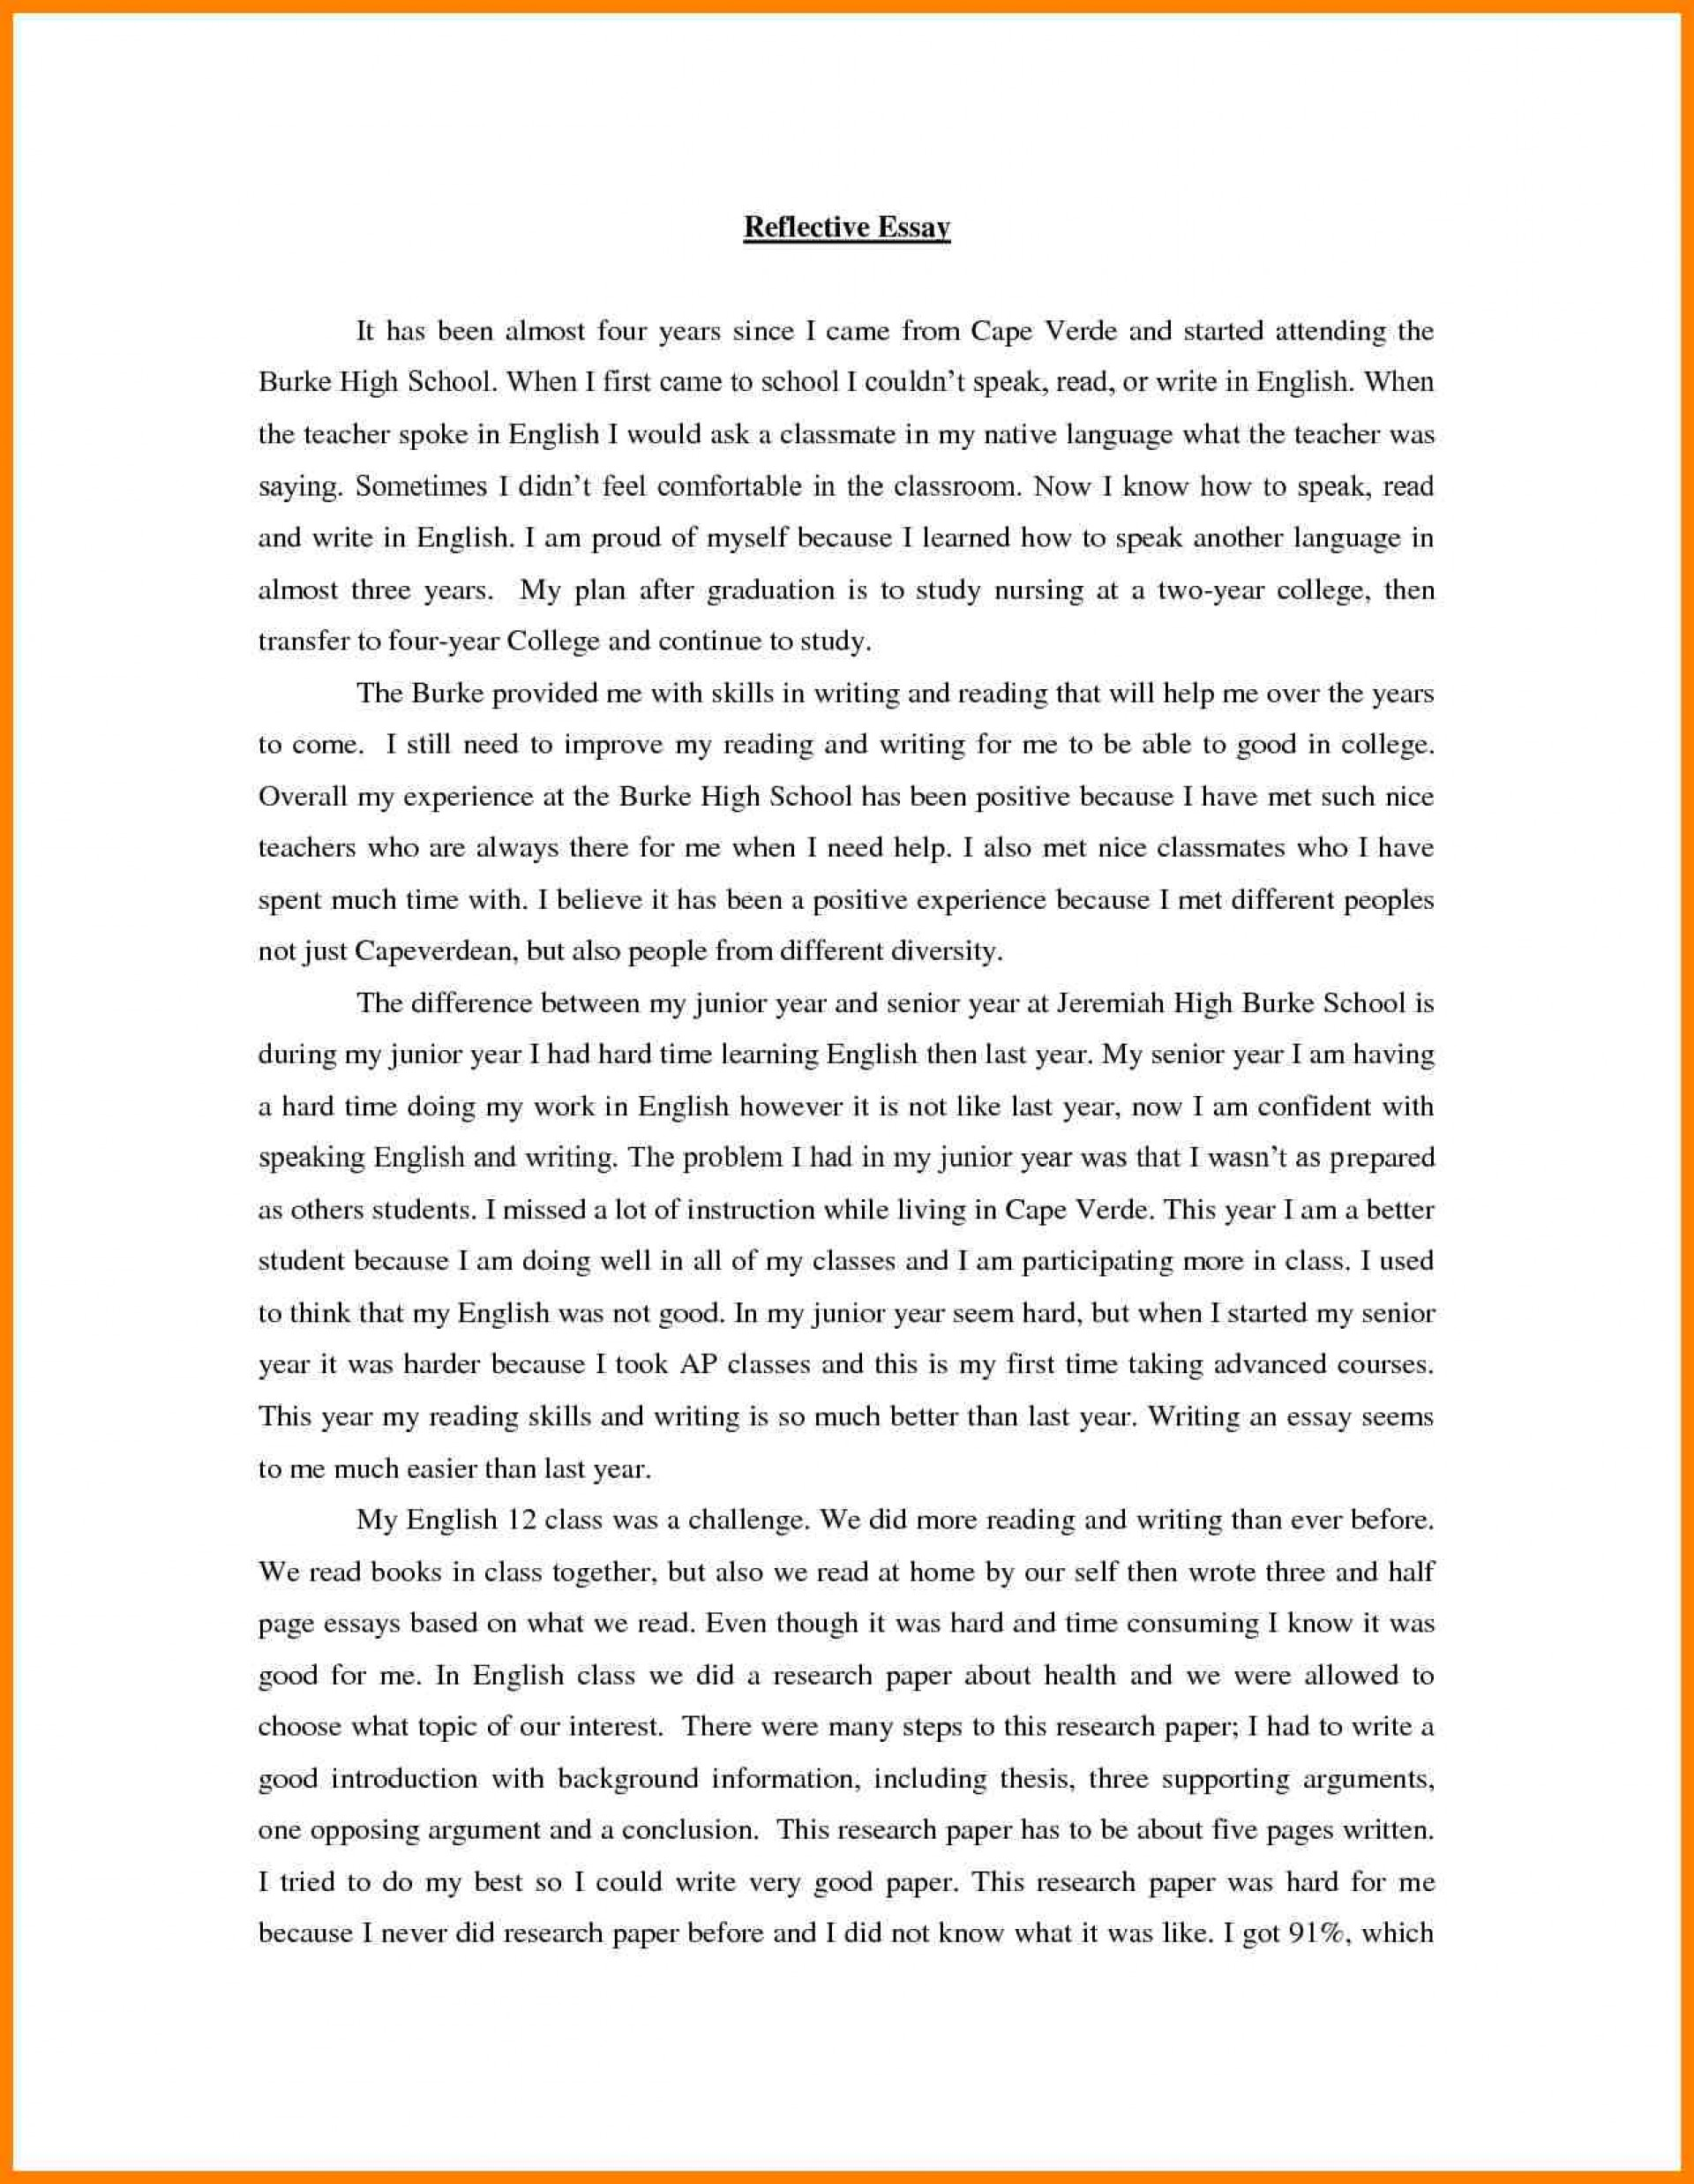 003 Essay Example Speak Brilliant Ideas Of Writing Reflection Printable Bill Lading Short Form Rf English Wonderful Conclusion Thesis Titles 1920